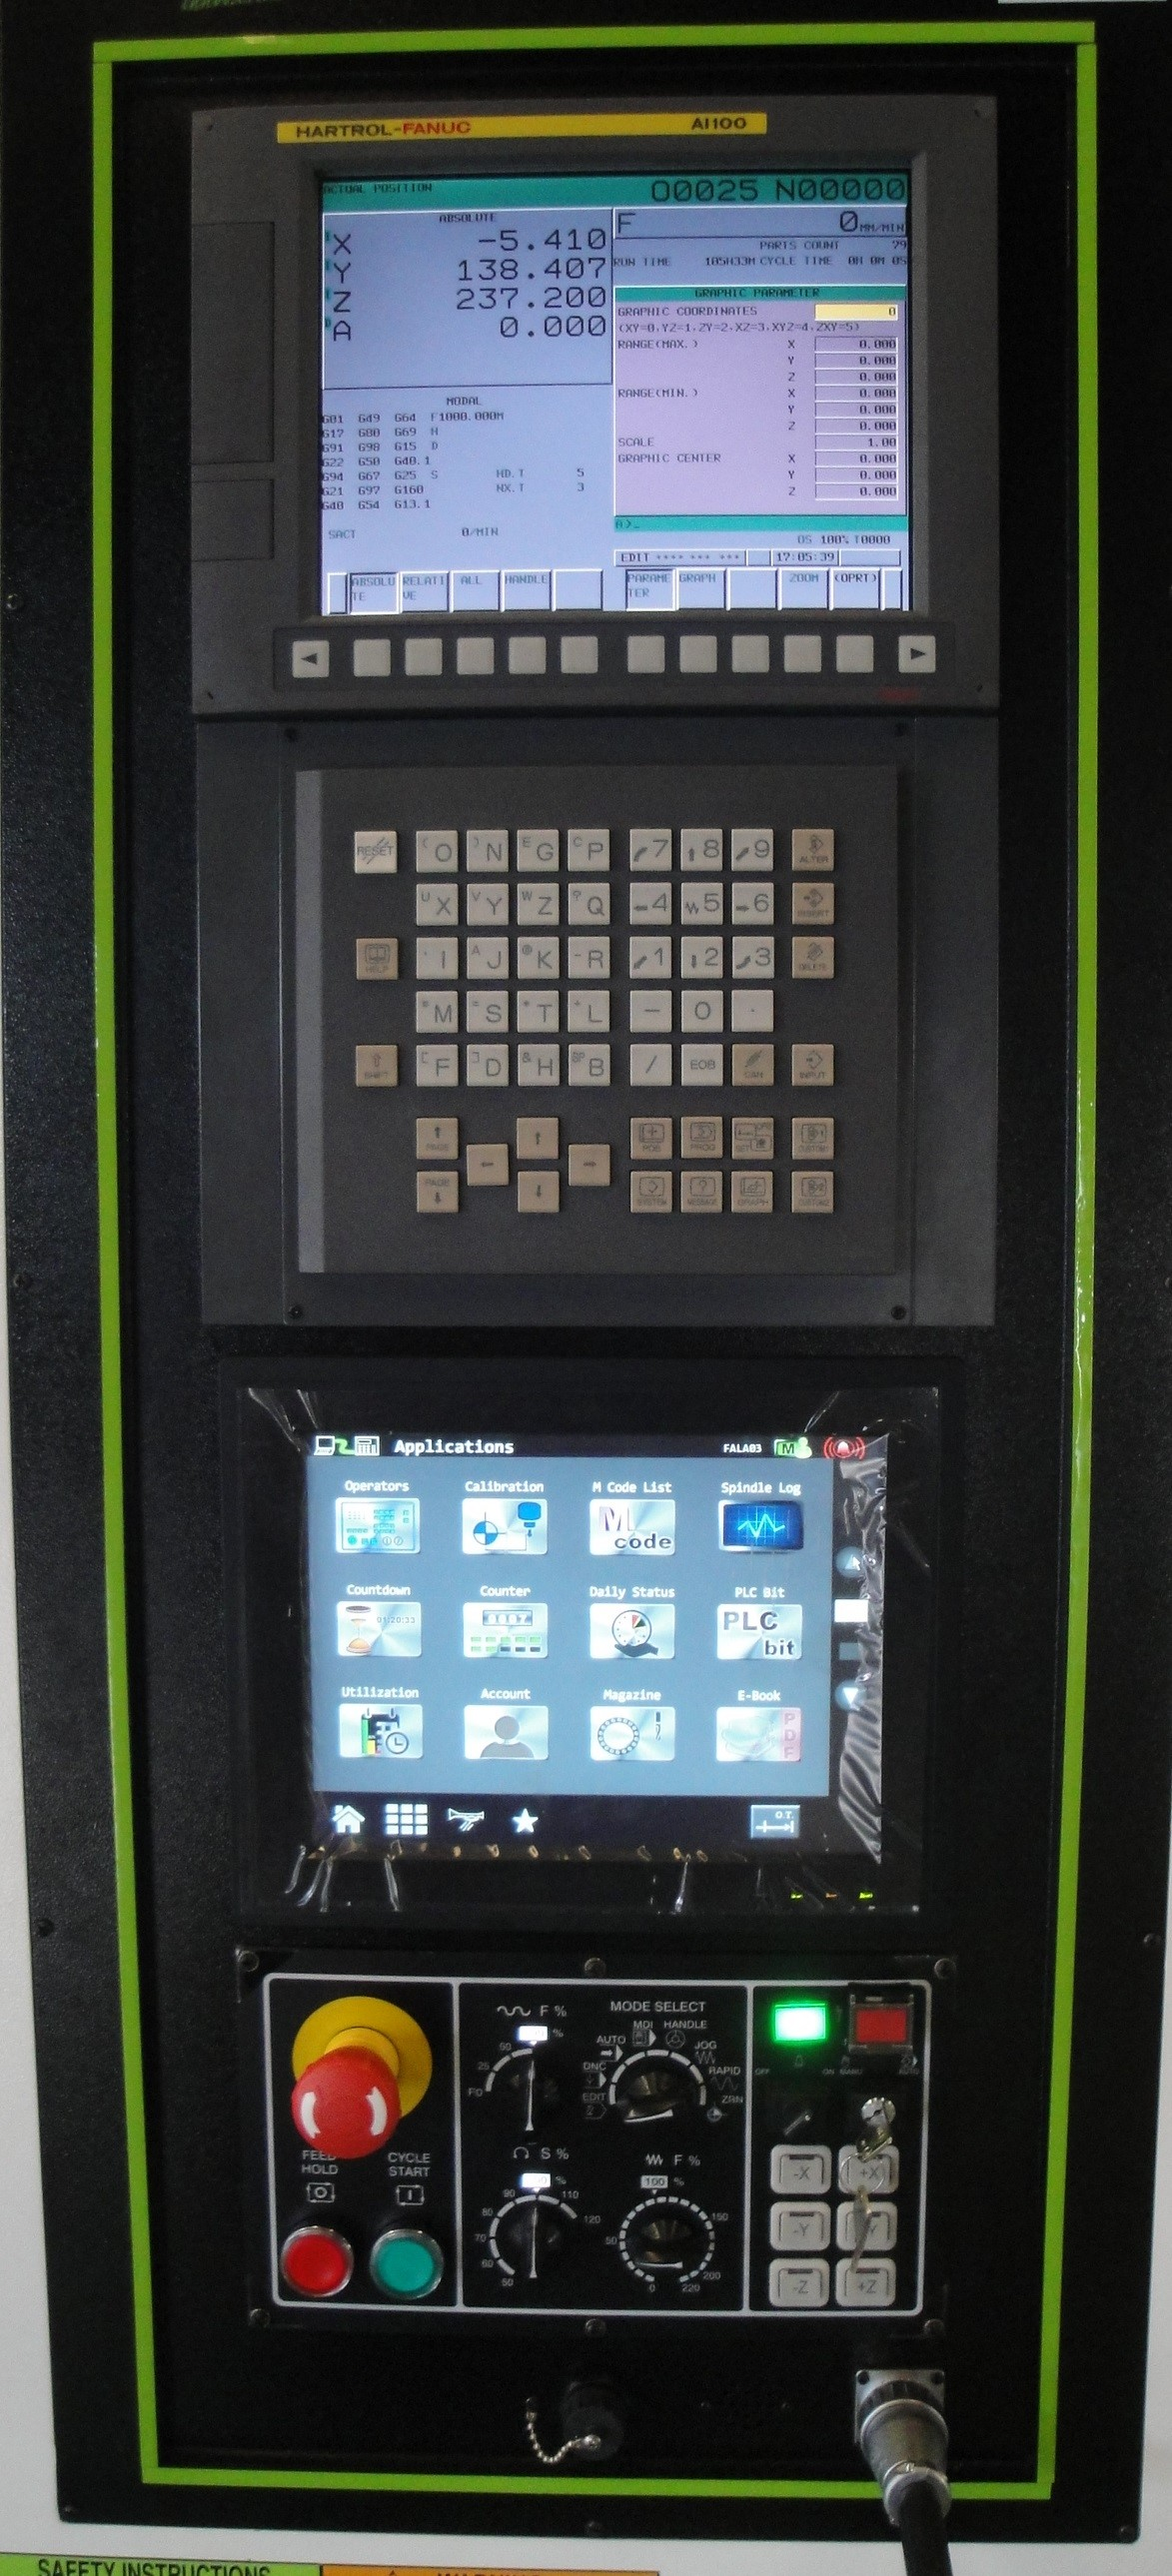 """Fanuc OiMF Control System  - 32 bit 10.4"""" Colour TFT LCD Display  - Manual guide i - Front mounted ATA flash memory card slot  - Part Program Storage 512KB (1280 metres) - Embedded Ethernet connection   HARTFORD DUAL SCREEN   Hartford, Taiwan's biggest Machining Centre manufacturer, has introduced the ground breaking dual screen interface. Available for Fanuc and Mitsubishi controllers. The touch screen interface puts all the key functions e.g. feedhold, coolant on/off etc...at your fingertips. The graphical workpiece calibration interface makes set up an absolute breeze. Saving you time and money.   It's a game changer!"""